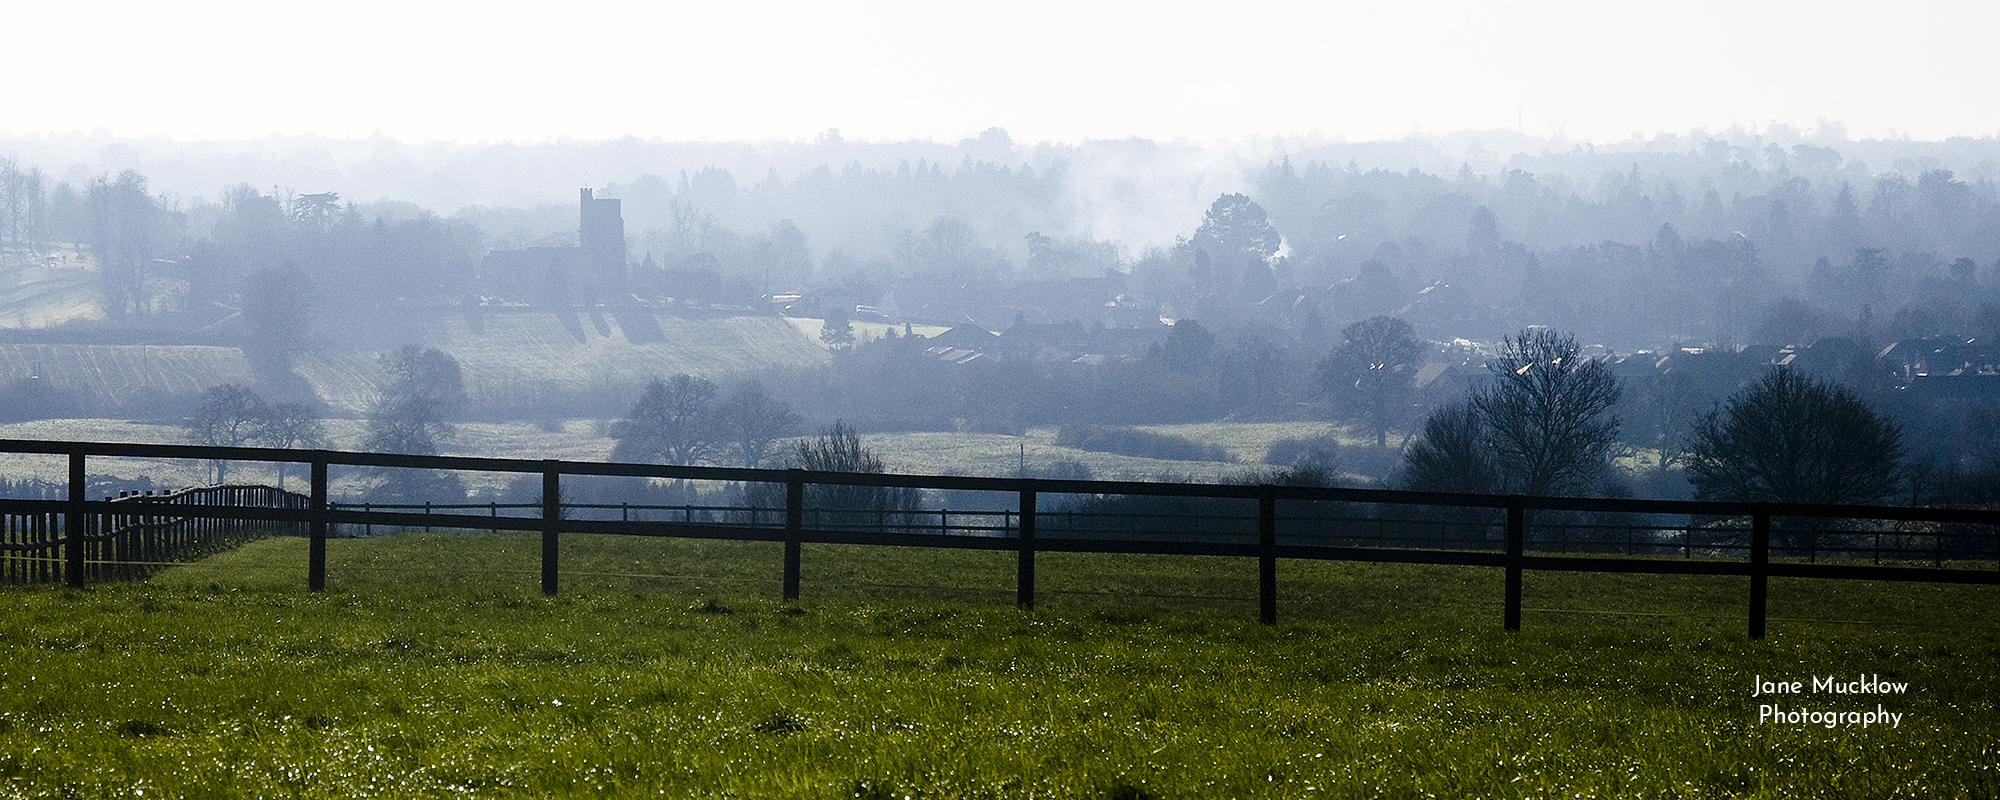 Photo by Jane Mucklow of a misty sunrise view from Kemsing to Seal and Sevenoaks, Kent, available as a canvas for your wall.